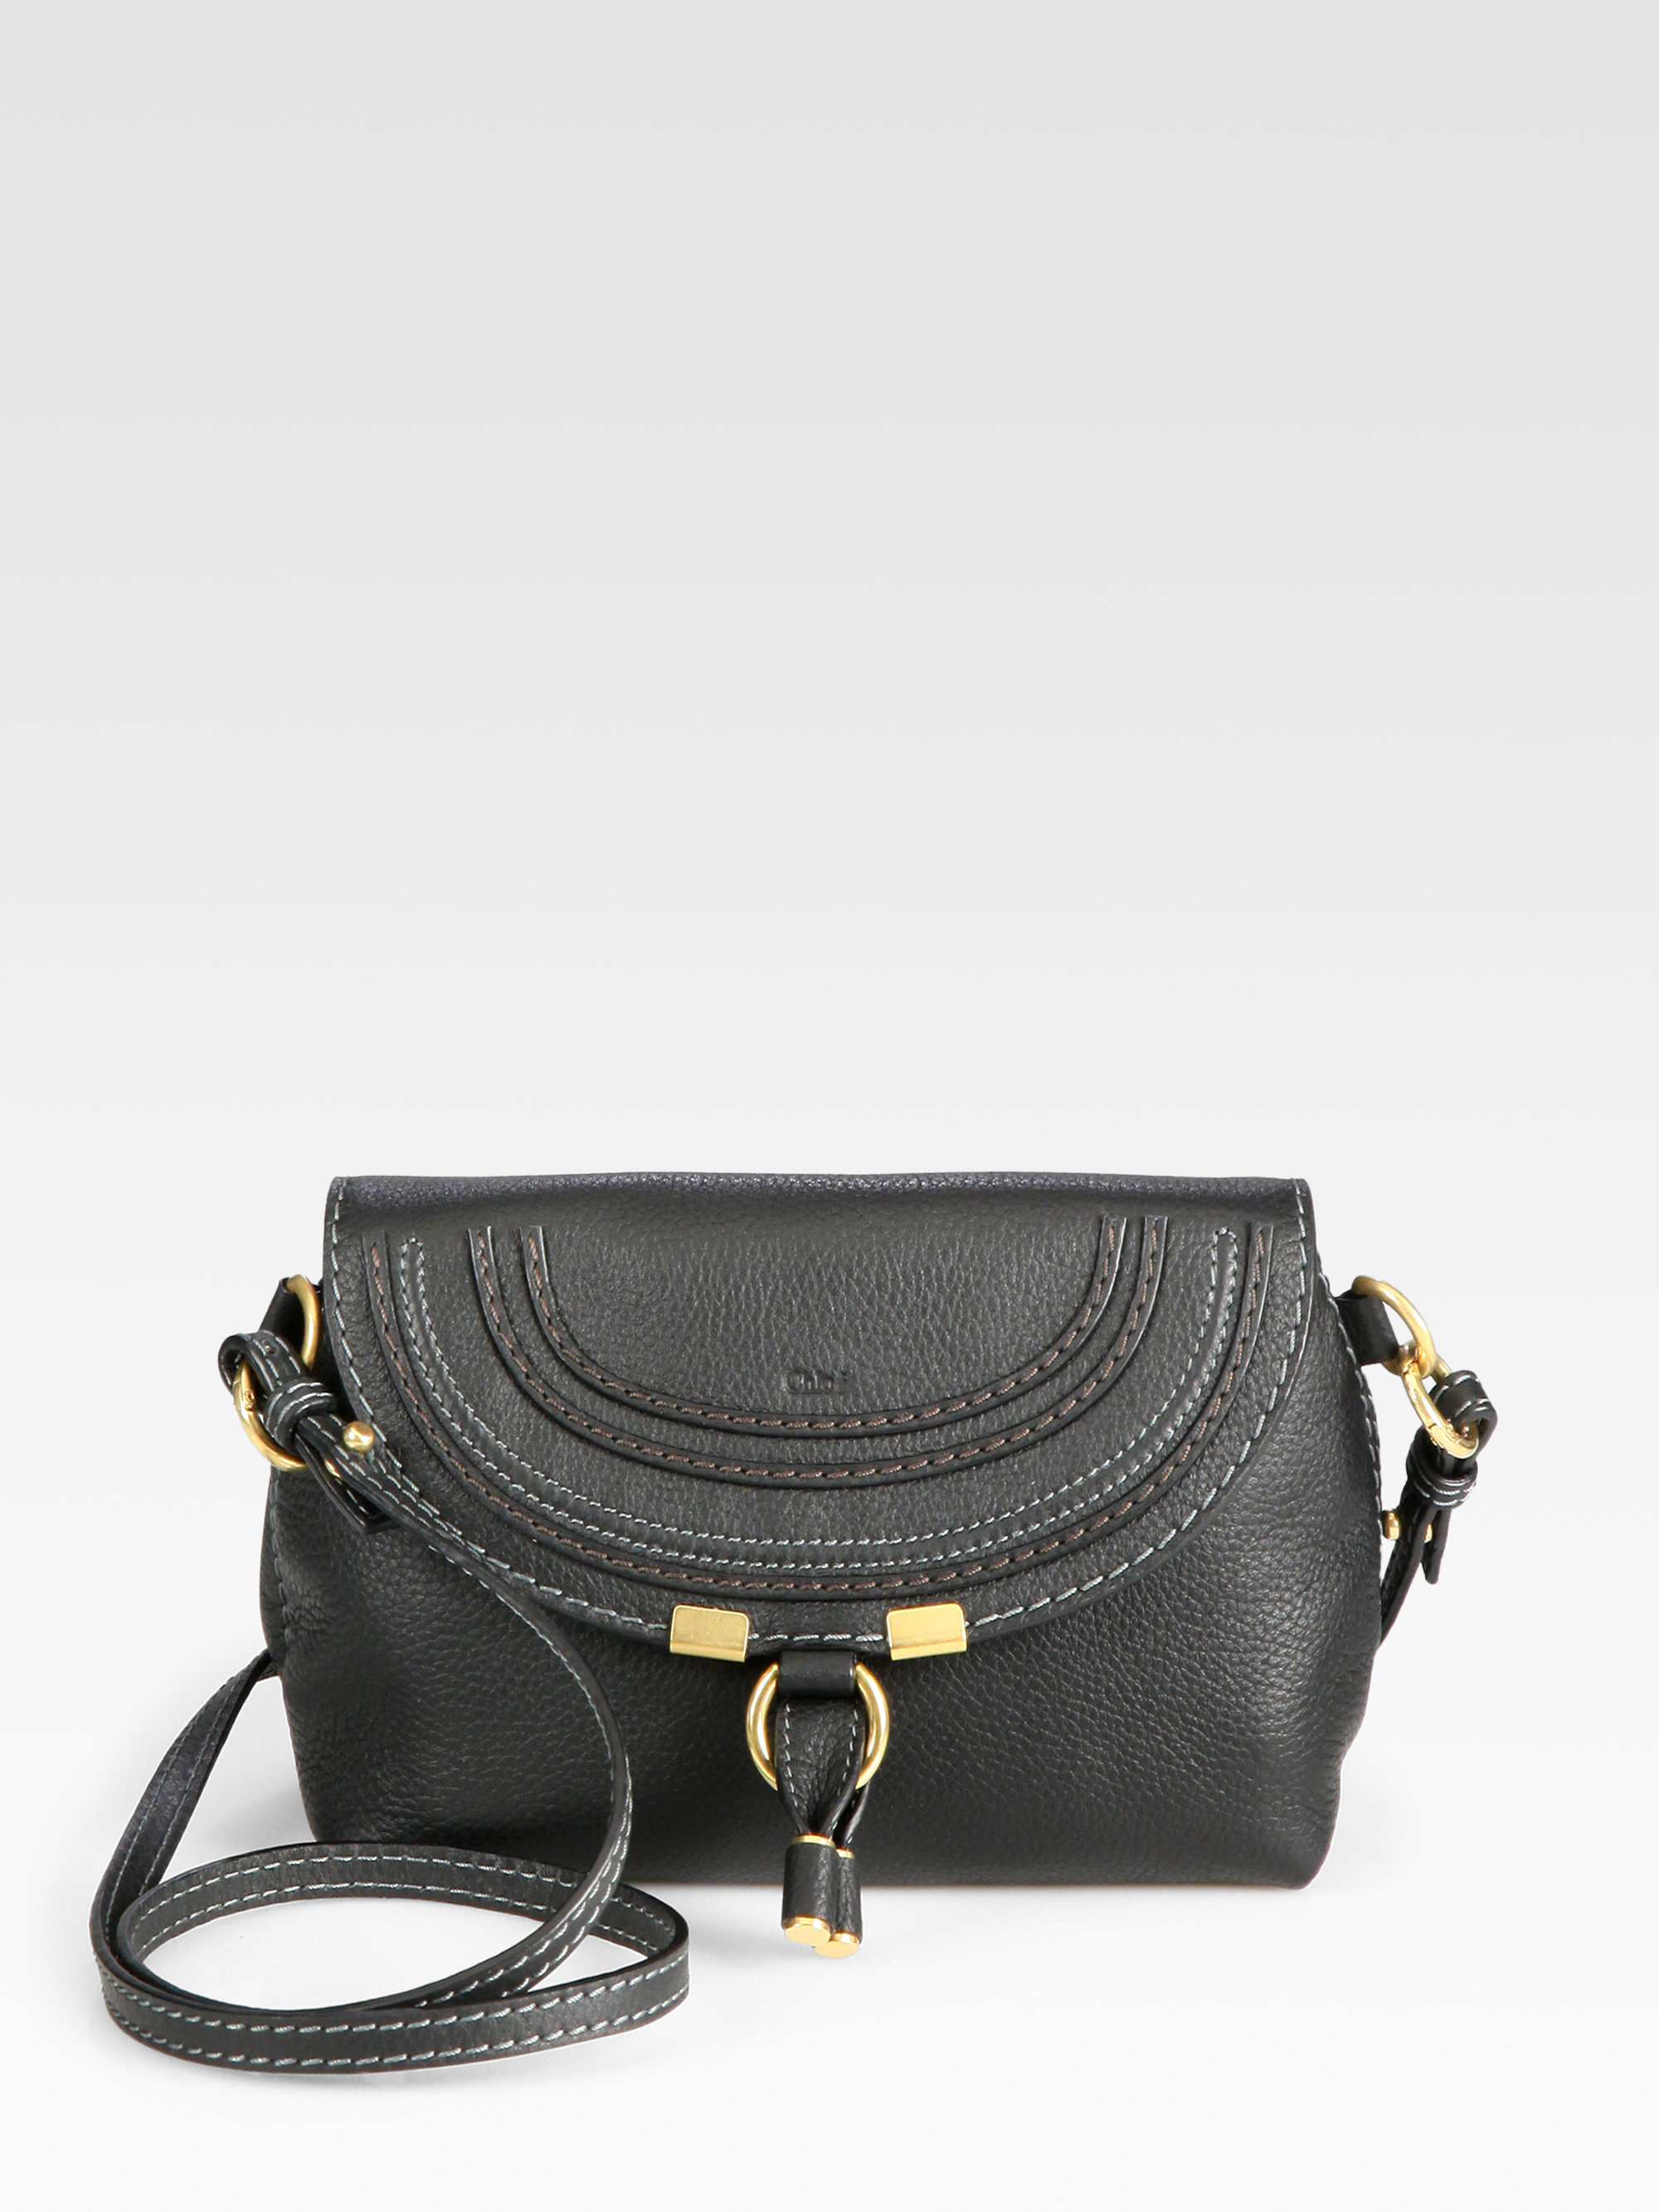 Chlo¨¦ Marcie Crossbody Bag in Black | Lyst